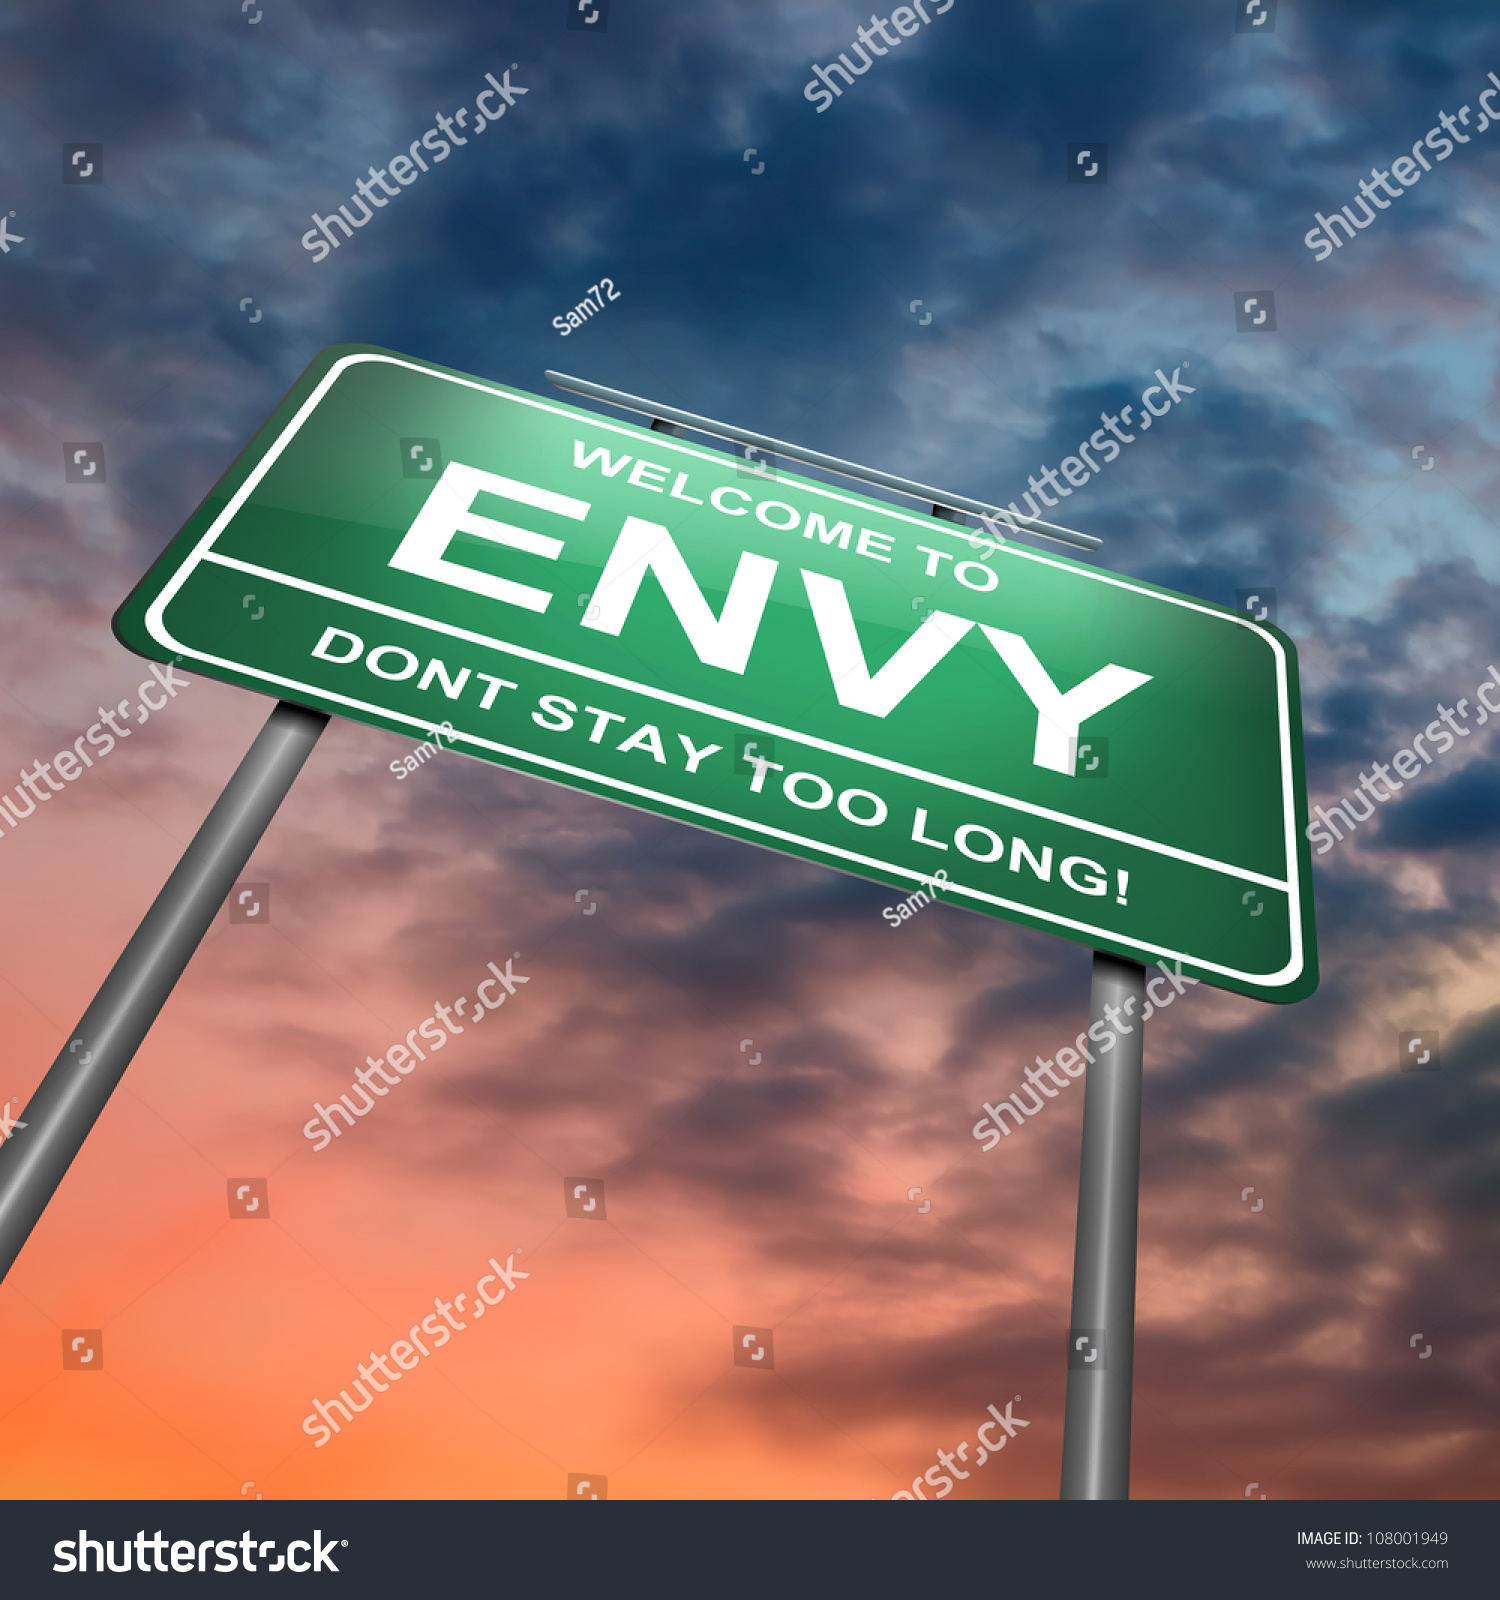 https://image.shutterstock.com/z/stock-photo-illustration-depicting-a-green-roadsign-with-an-envy-concept-dramatic-sky-background-108001949.jpg